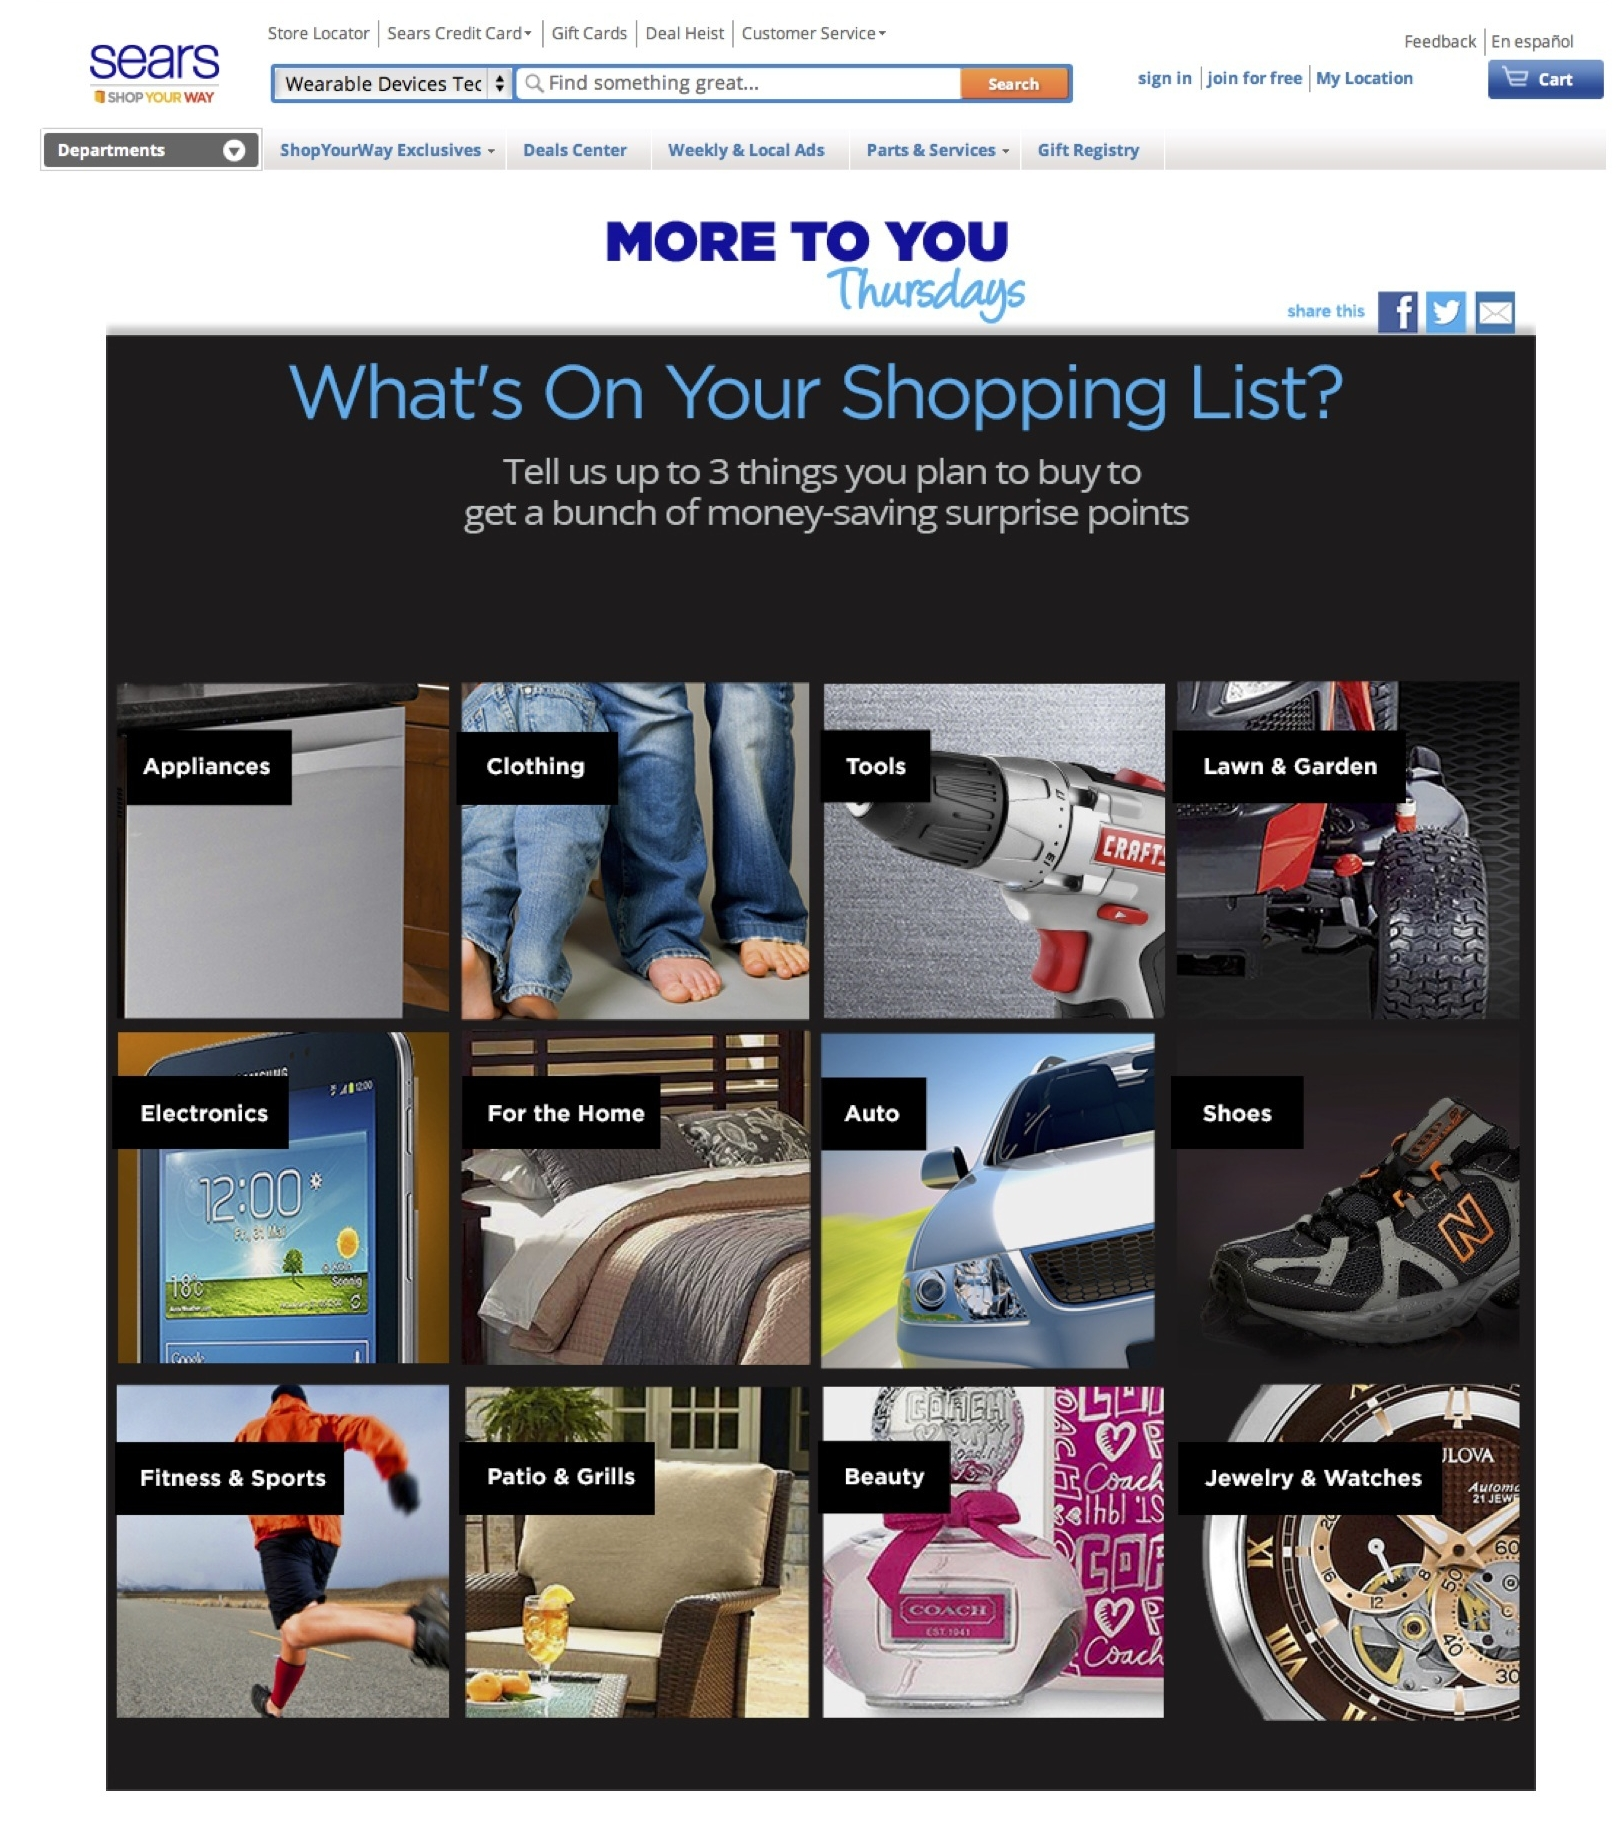 More to You Thursday Landing Page